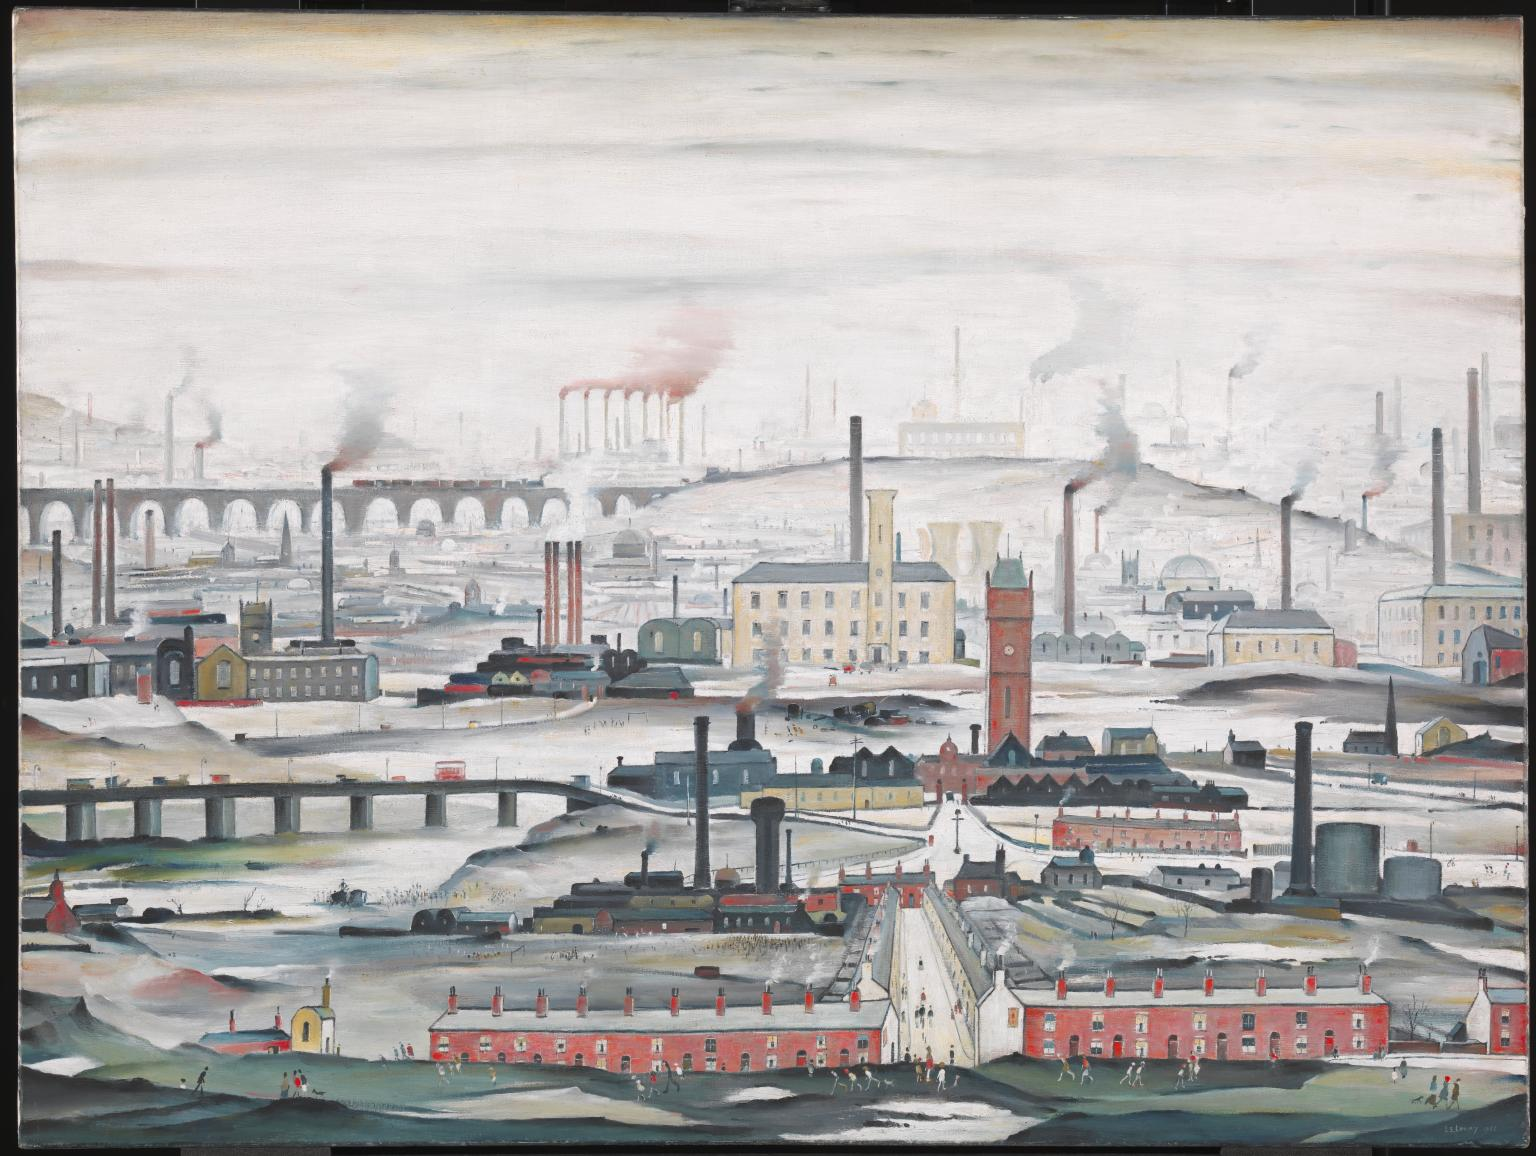 Industrial Landscape 1955 by L.S. Lowry 1887-1976